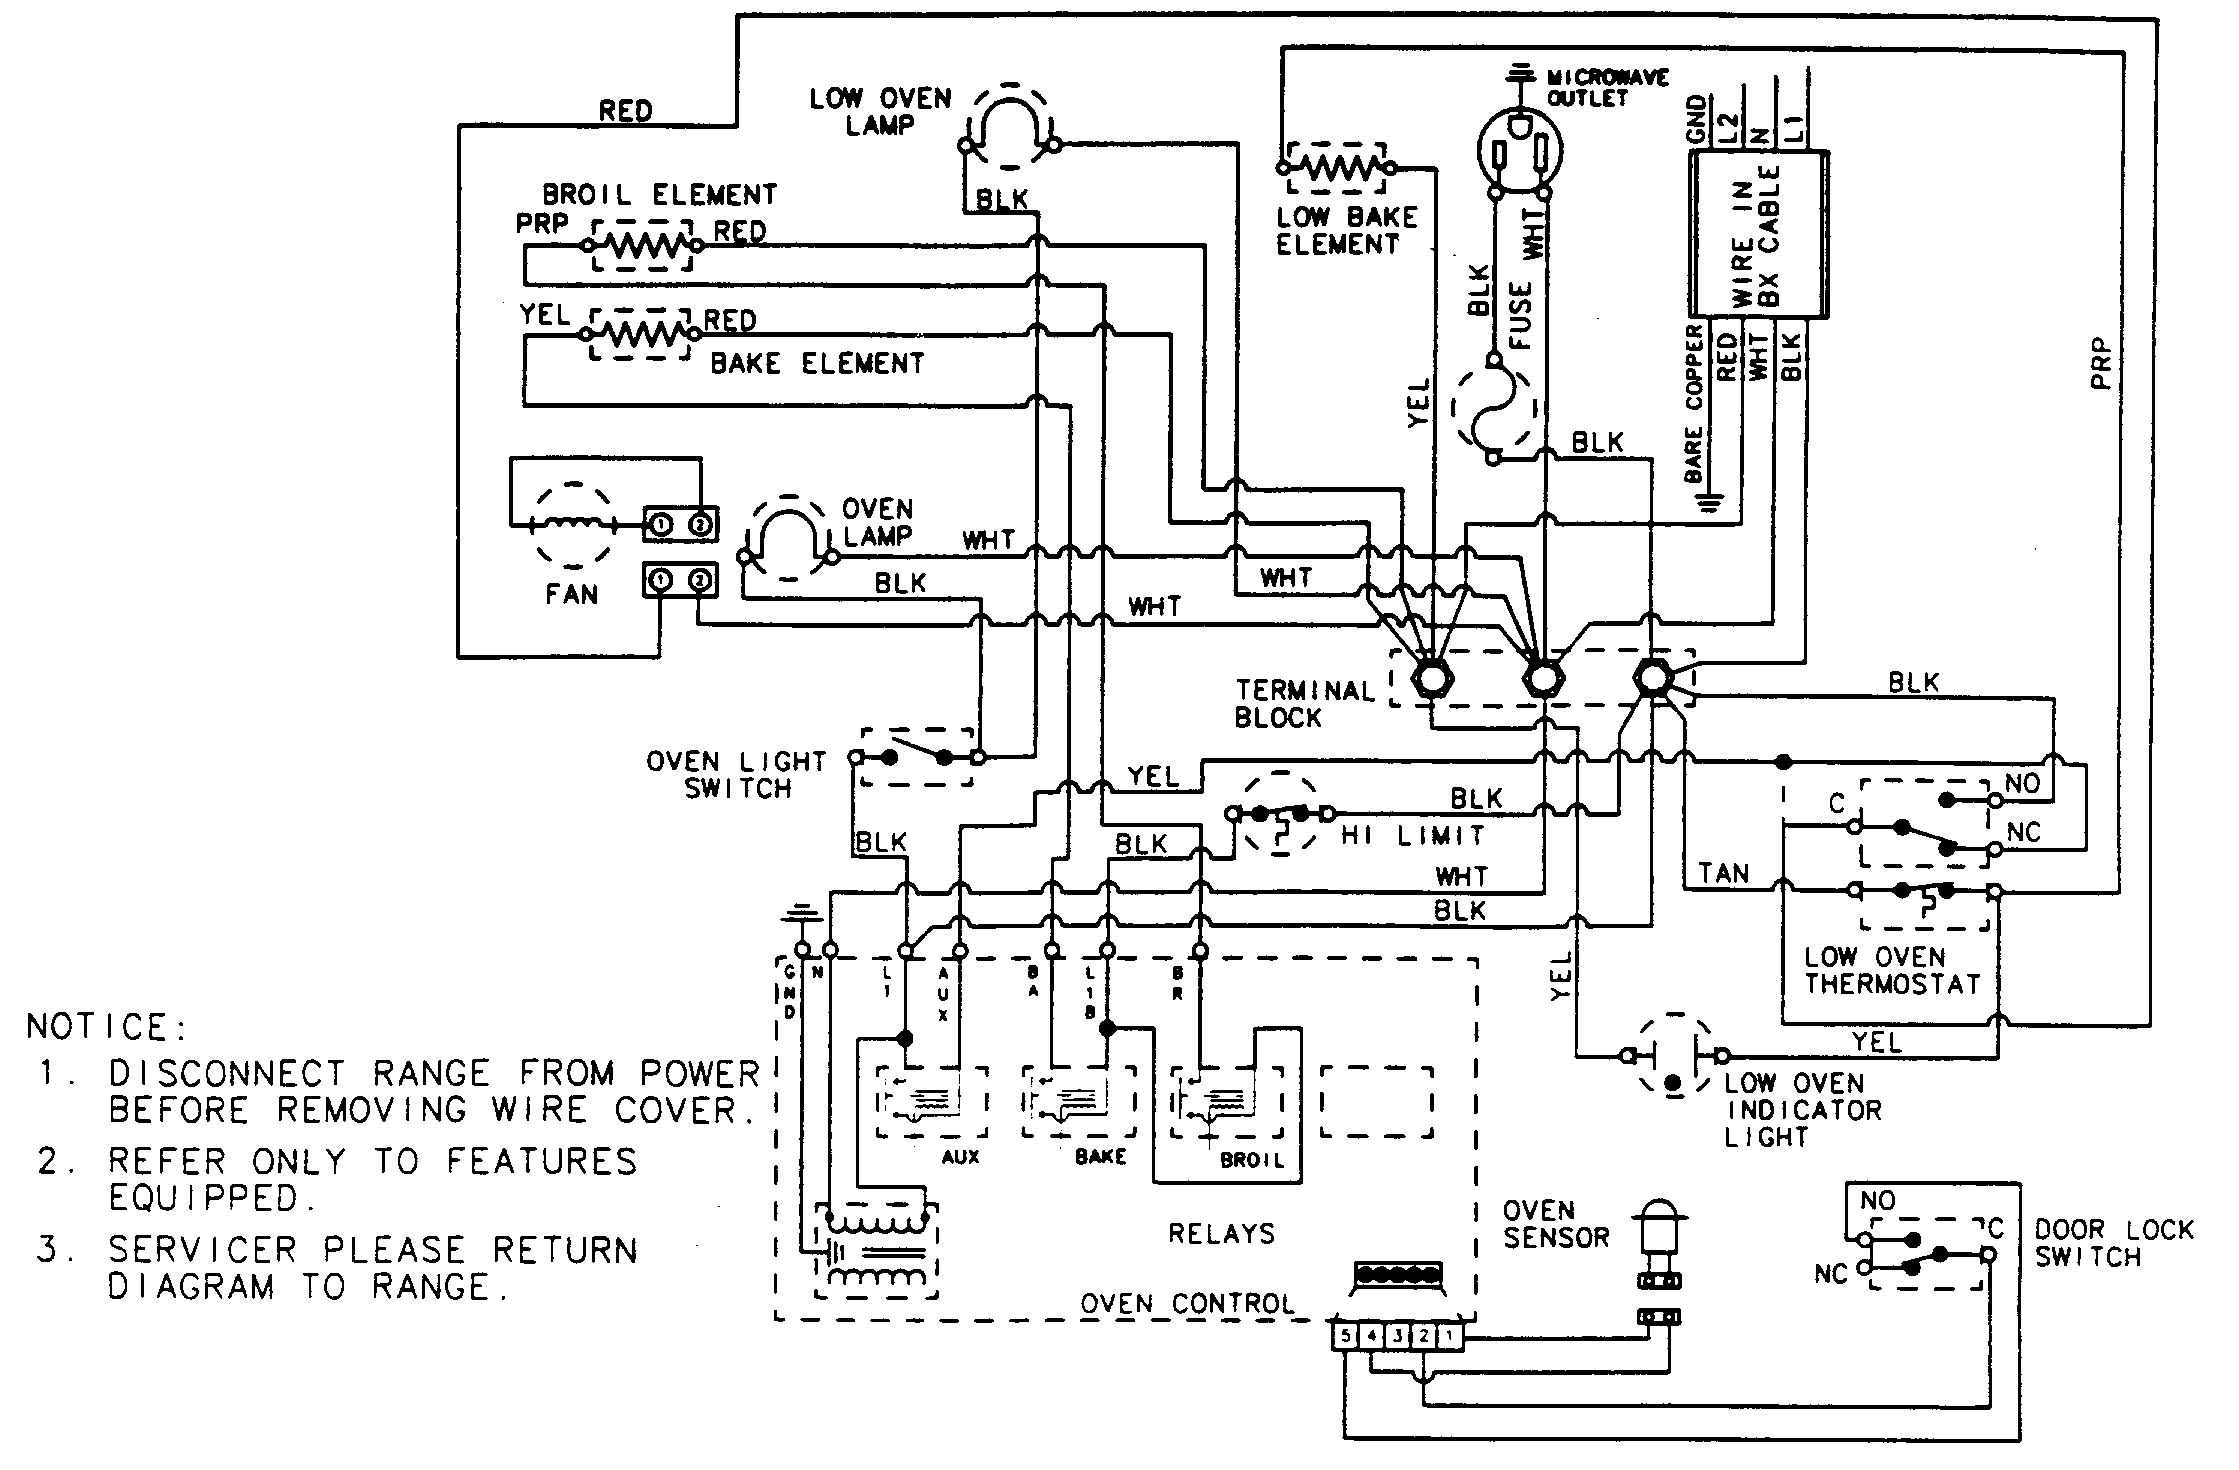 wiring information parts magic chef 9825vuv electric oven timer stove clocks and electric smoker wiring diagram at bakdesigns.co